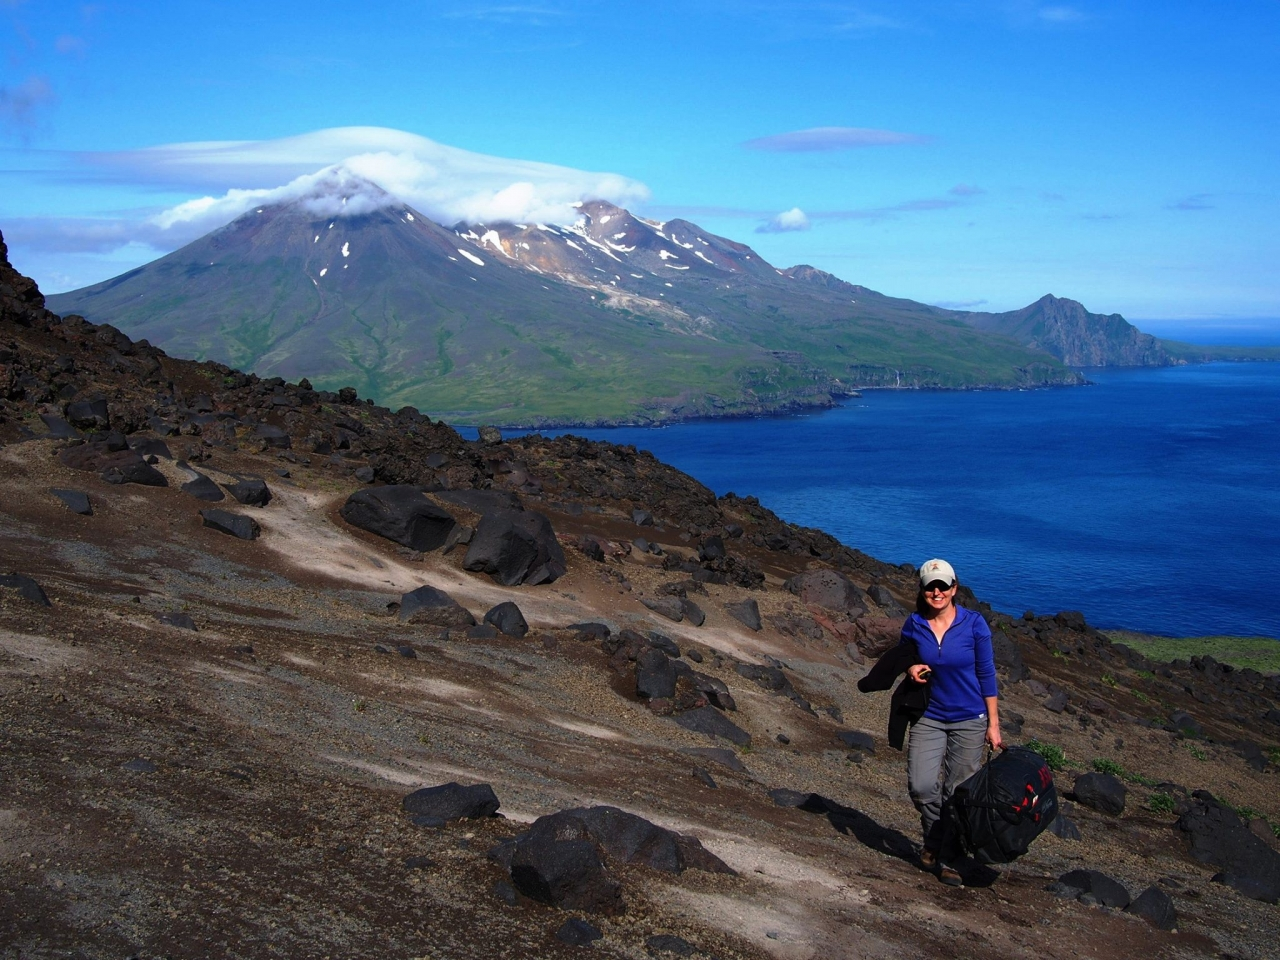 Carnegie's Diana Roman collecting samples from Alaska's Cleveland volcano, one of the most-active volcanoes in the Aleutians.  Tana Volcano on Chuginadak Island isn in the background. Photo is courtesy of Anna Barth of Lamont Doherty Earth Observatory.